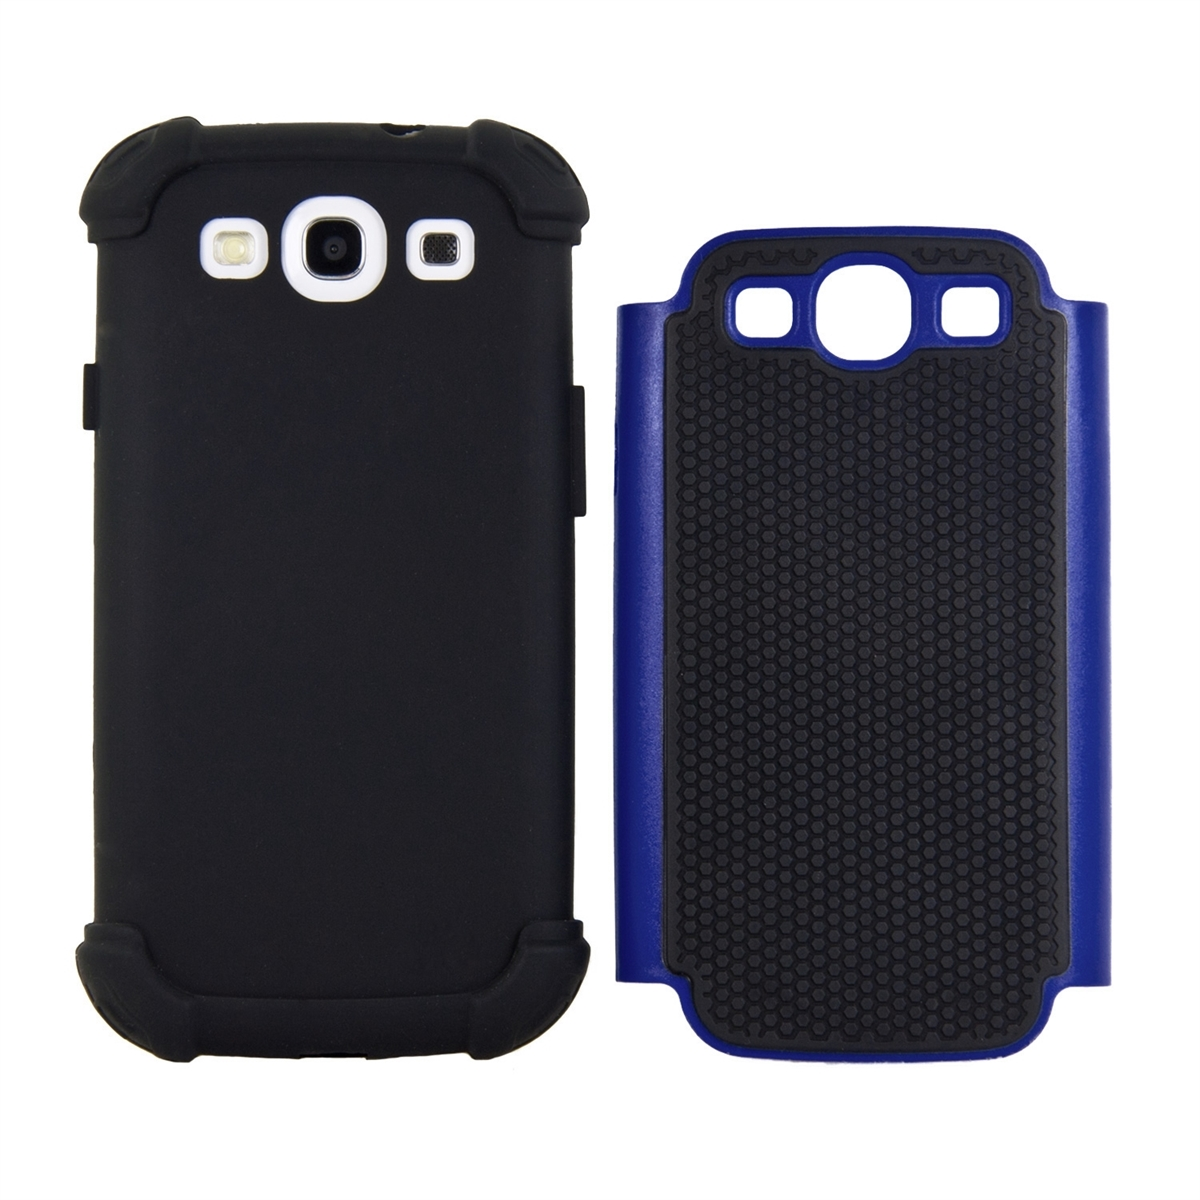 Tpu samsung galaxy s3 s3 neo - Kwmobile Hybrid Case For Samsung Galaxy S3 S3 Neo In Blue Black Tpu Inner Case Hardcase Shield Perfect For Outdoor Usage Of Your Smartphone And